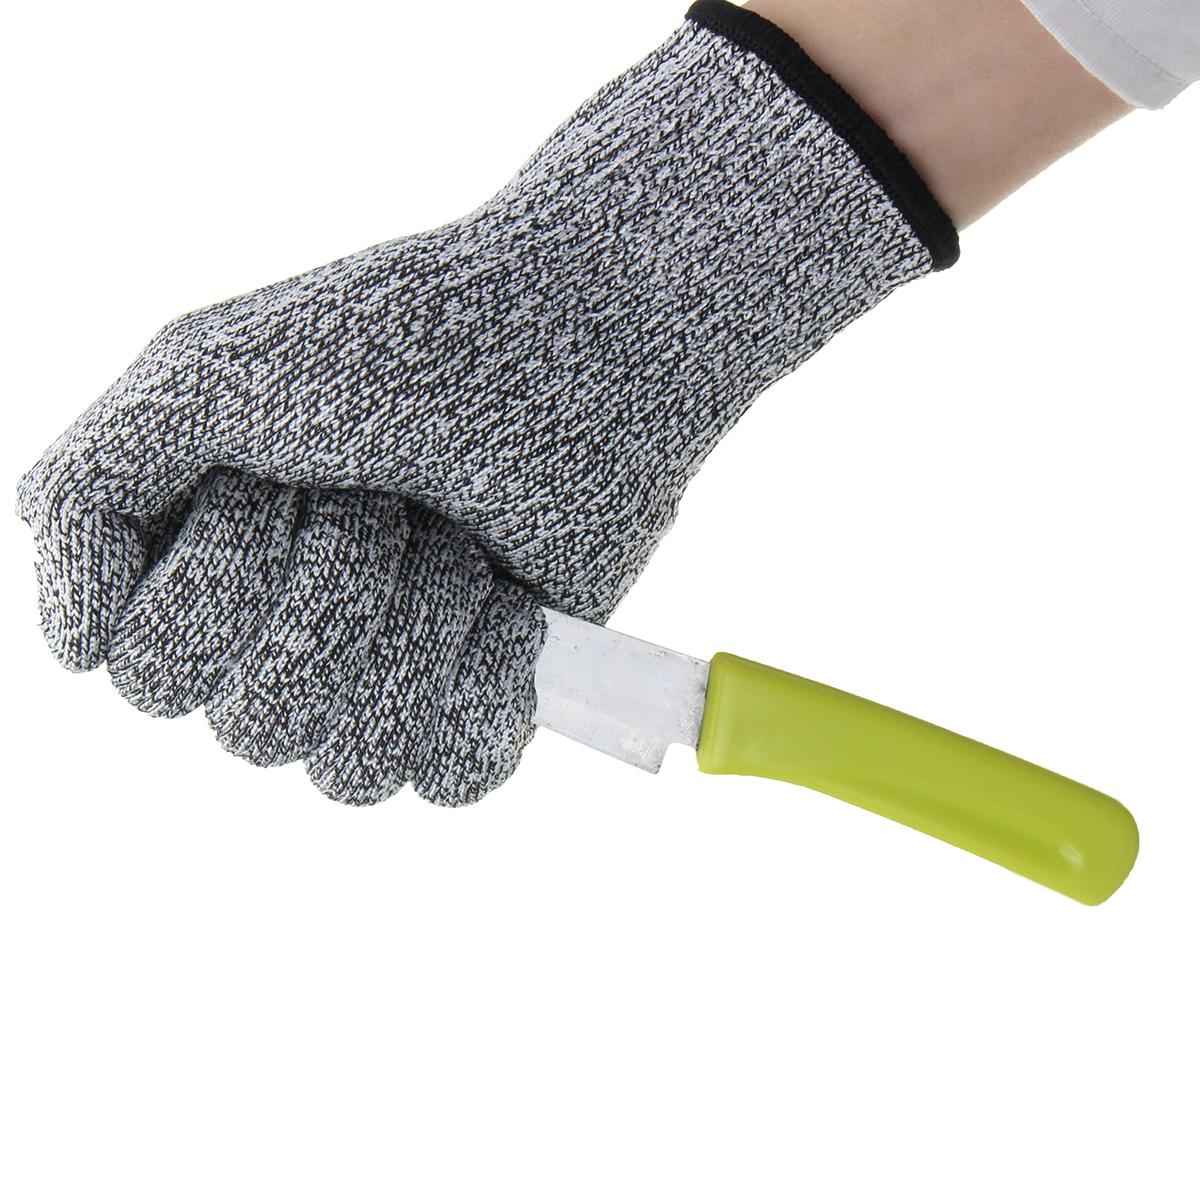 NEW Anti-Cutting Cut Resistant Gloves Food Grade Kitchen Butcher Protection -Level 5 Workplace Safety